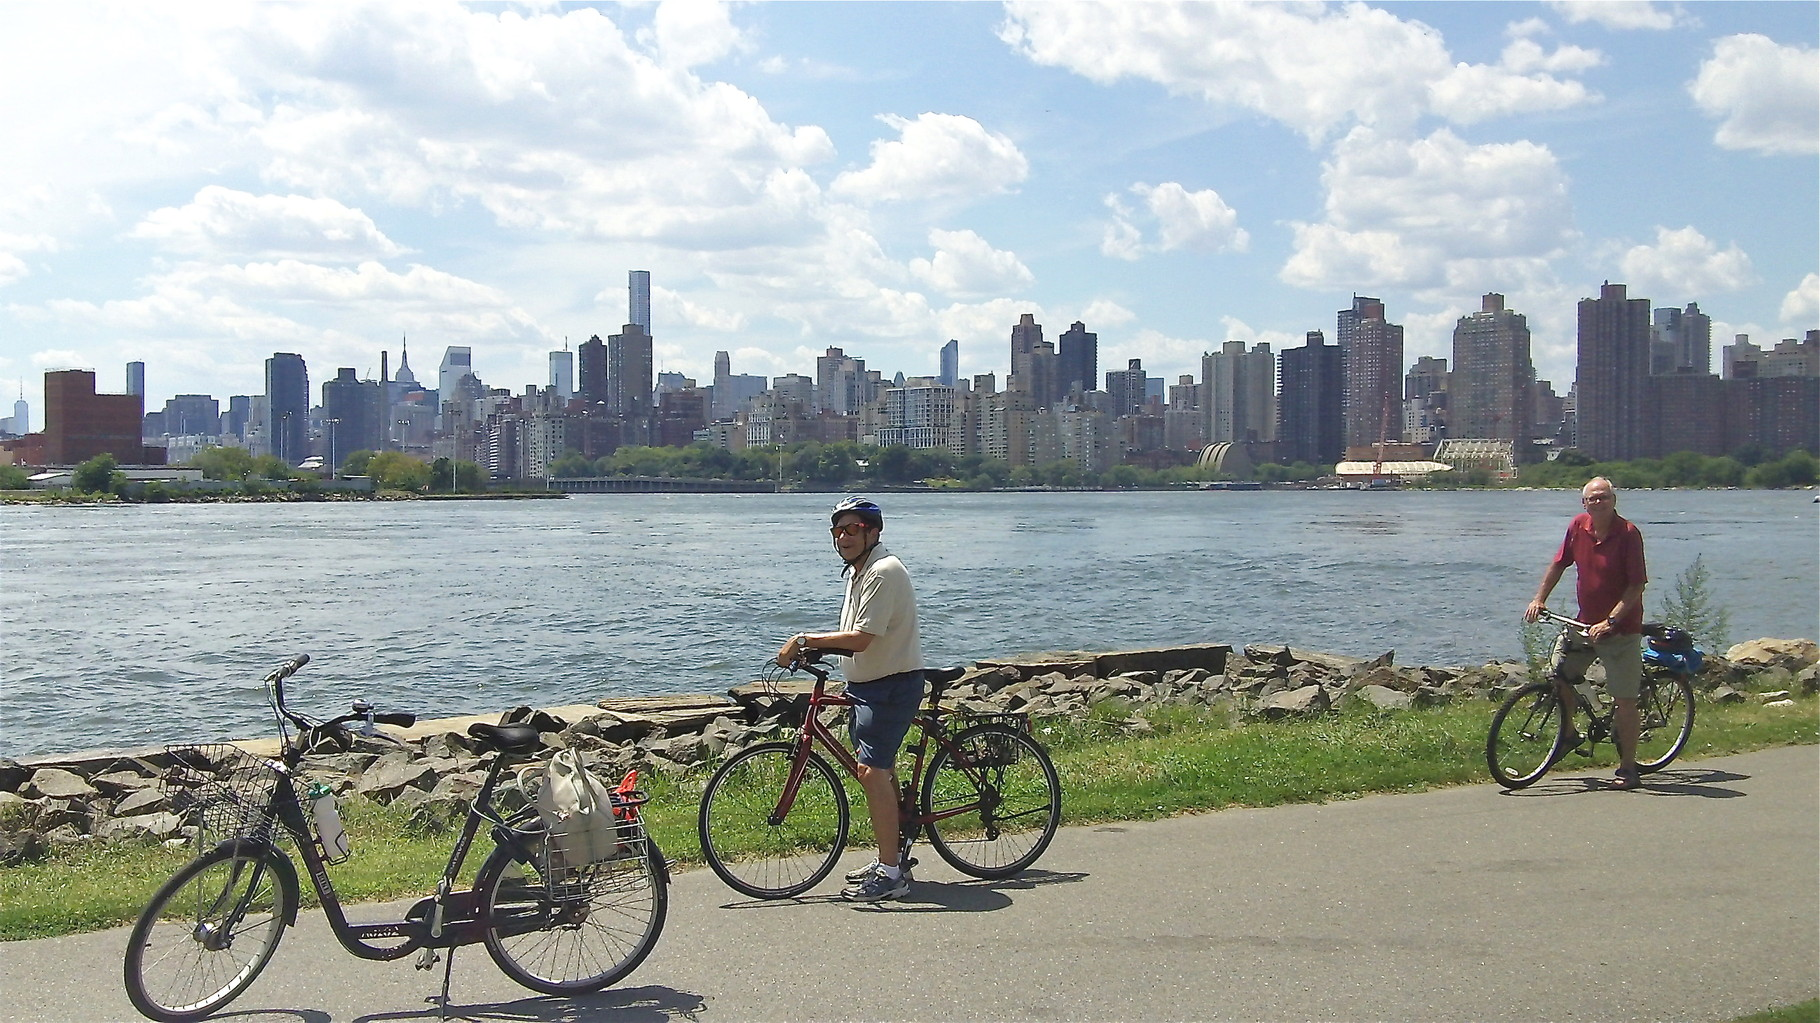 John & Bernd on Randall's Island biking